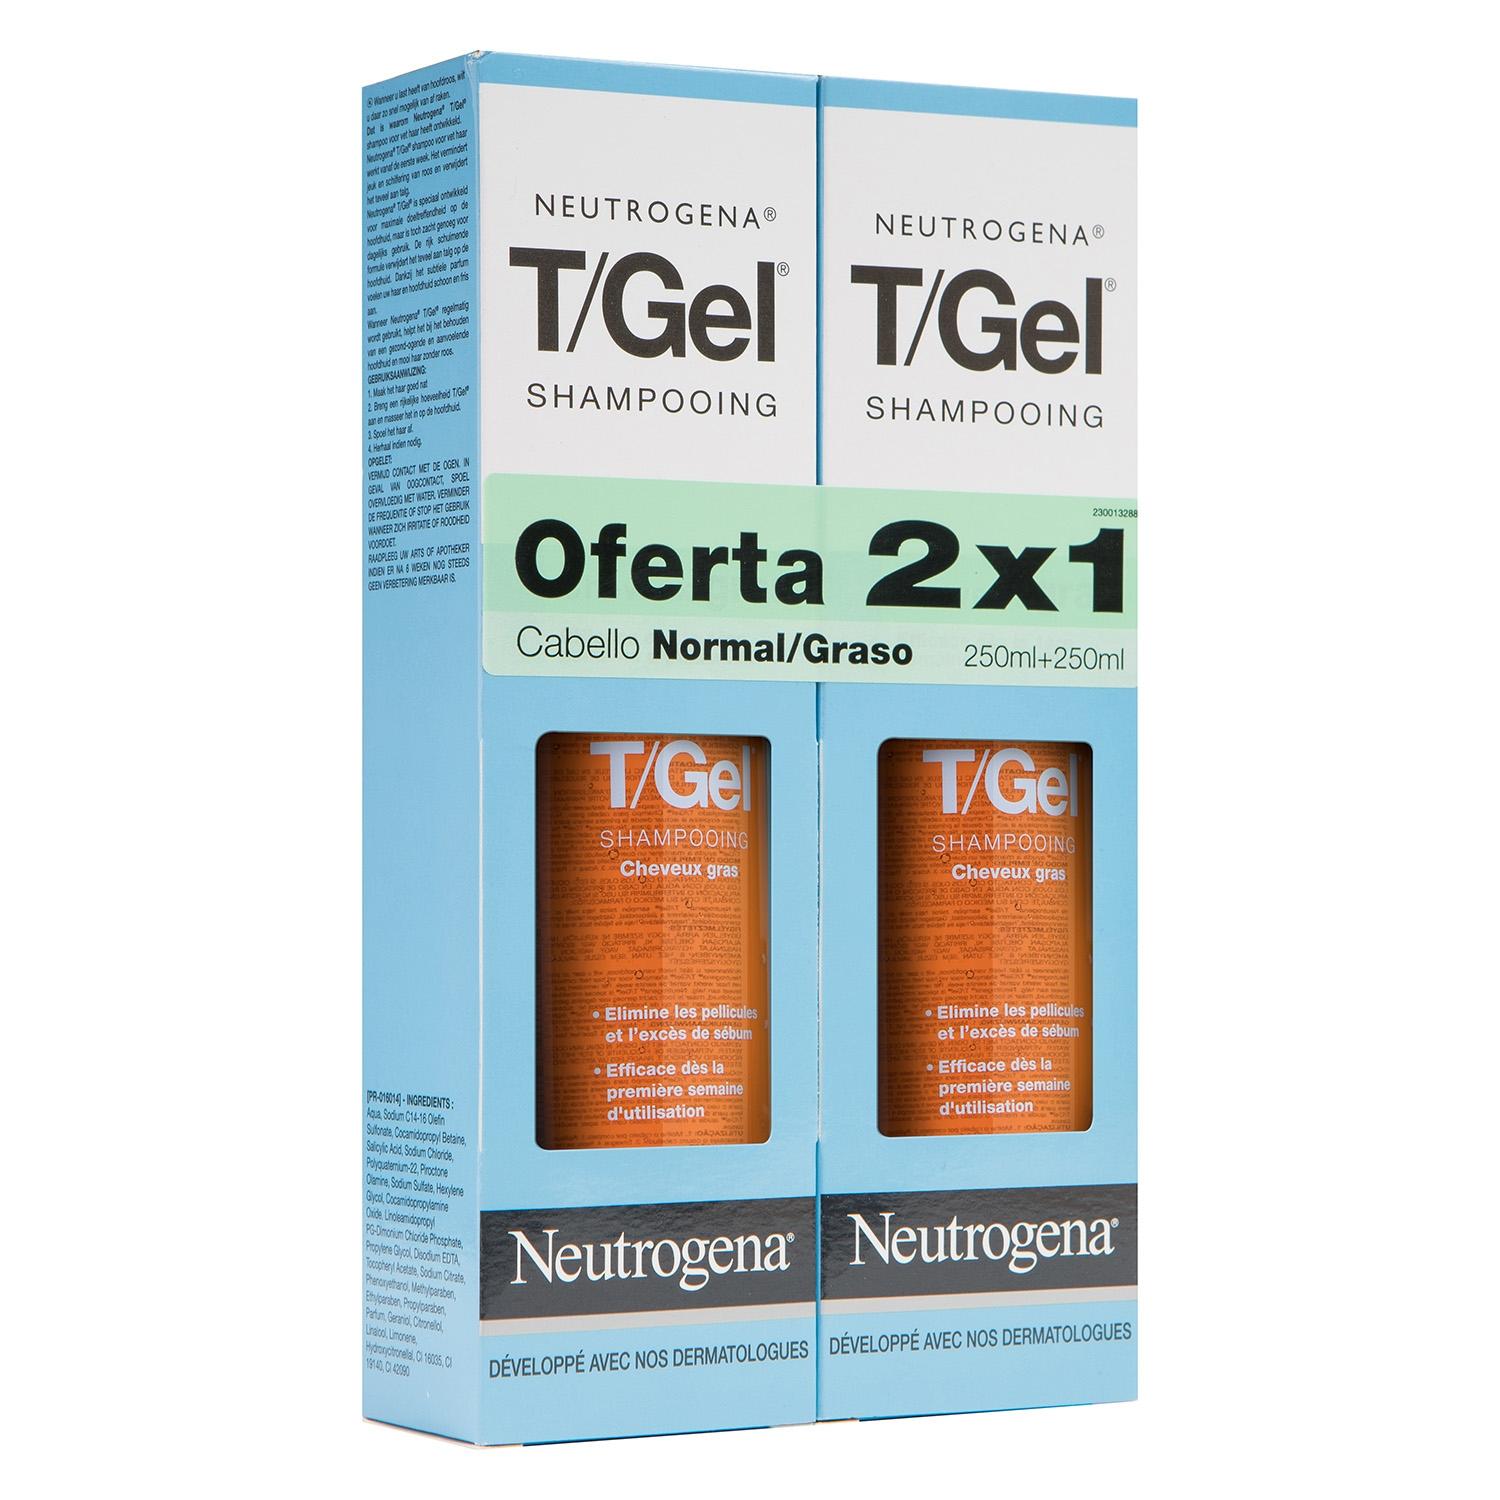 Champu t/gel cabello normal/graso